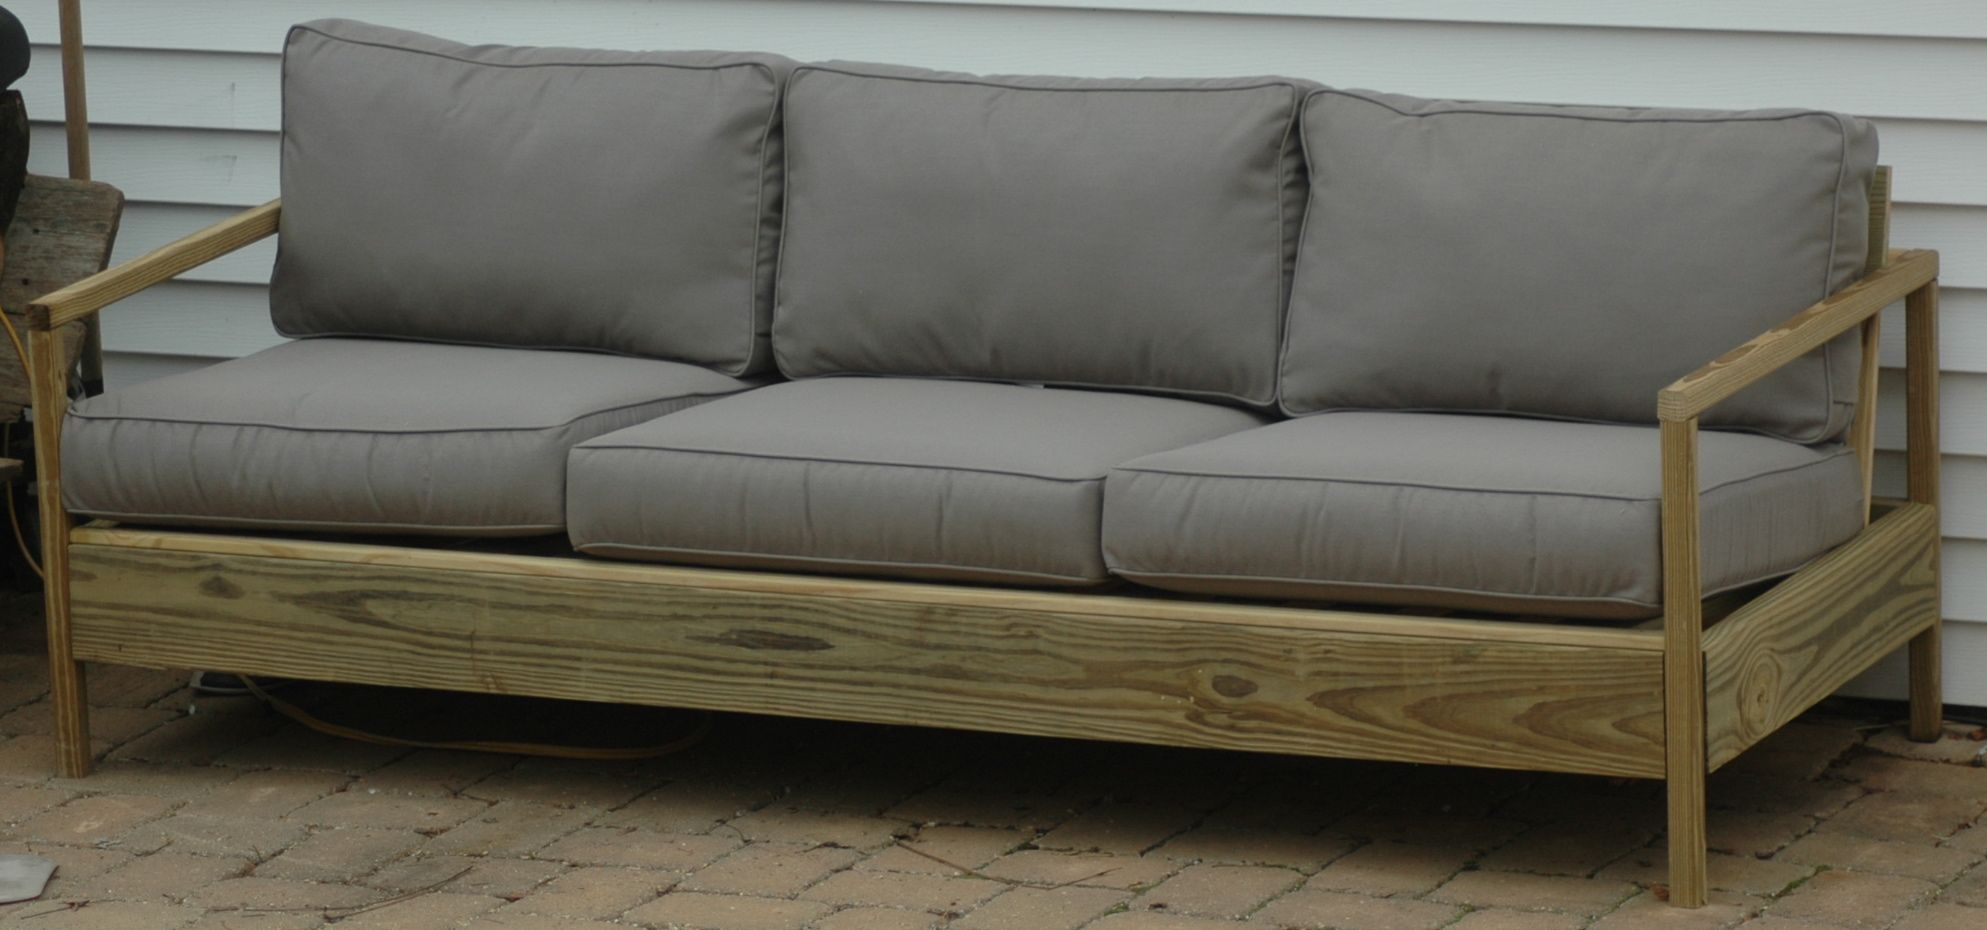 84 patio sofa do it yourself home projects from ana white 84 patio sofa diy projects solutioingenieria Choice Image